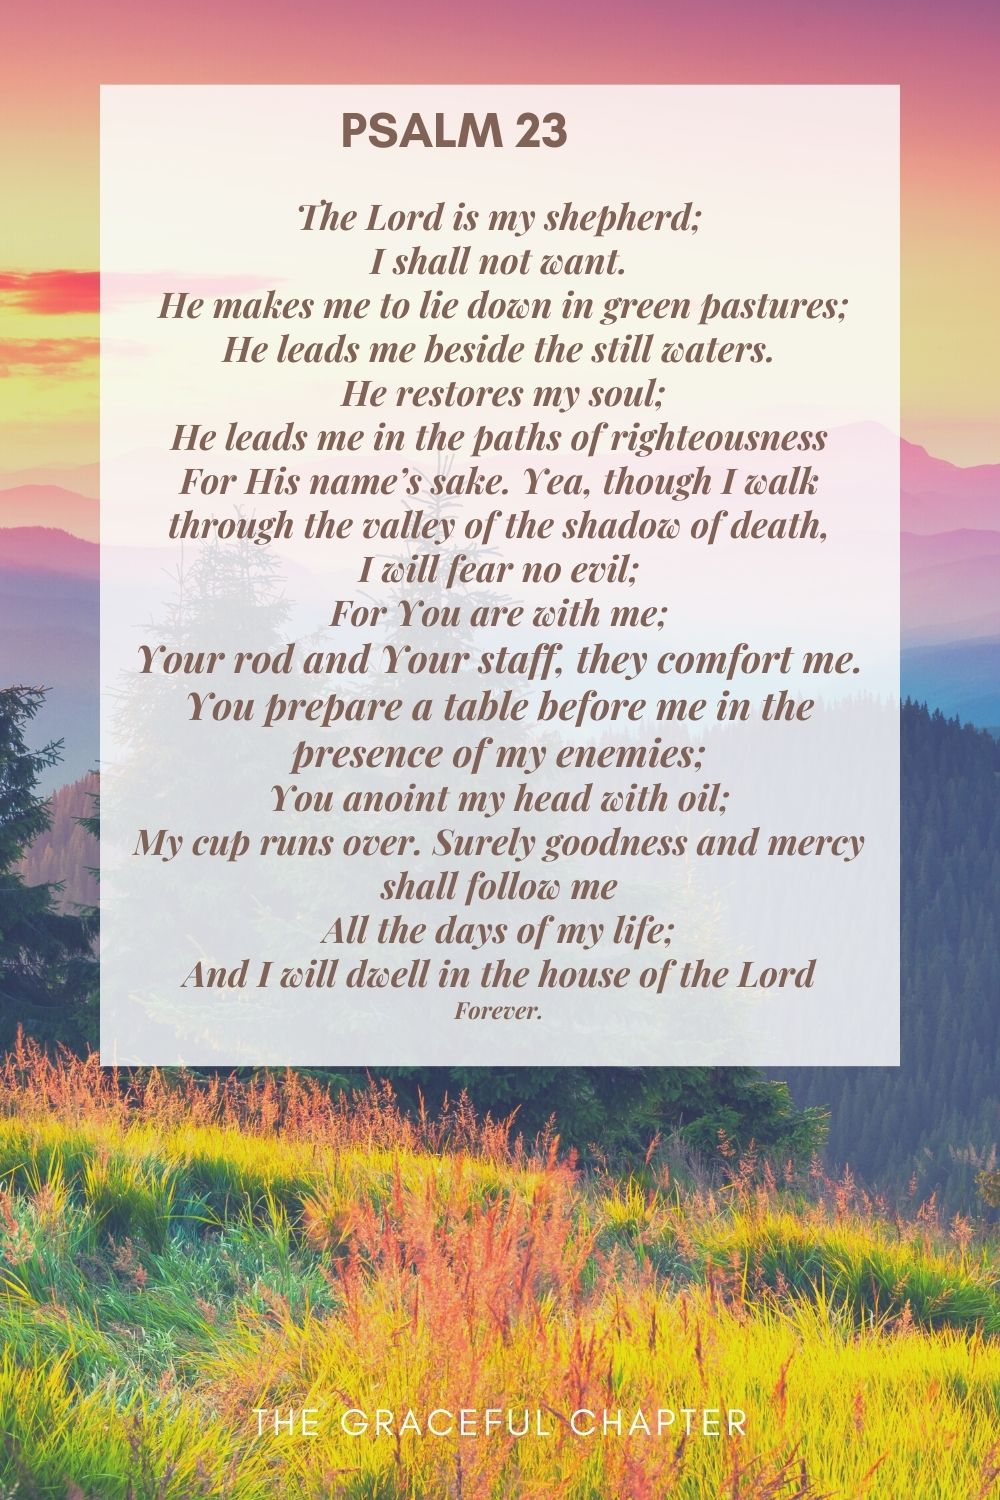 The Lord is my shepherd; I shall not want.  He makes me to lie down in green pastures; He leads me beside the still waters.  He restores my soul; He leads me in the paths of righteousness For His name's sake. Yea, though I walk through the valley of the shadow of death, I will fear no evil; For You are with me; Your rod and Your staff, they comfort me. You prepare a table before me in the presence of my enemies; You anoint my head with oil; My cup runs over. Surely goodness and mercy shall follow me All the days of my life; And I will dwell in the house of the Lord Forever. Psalm 23